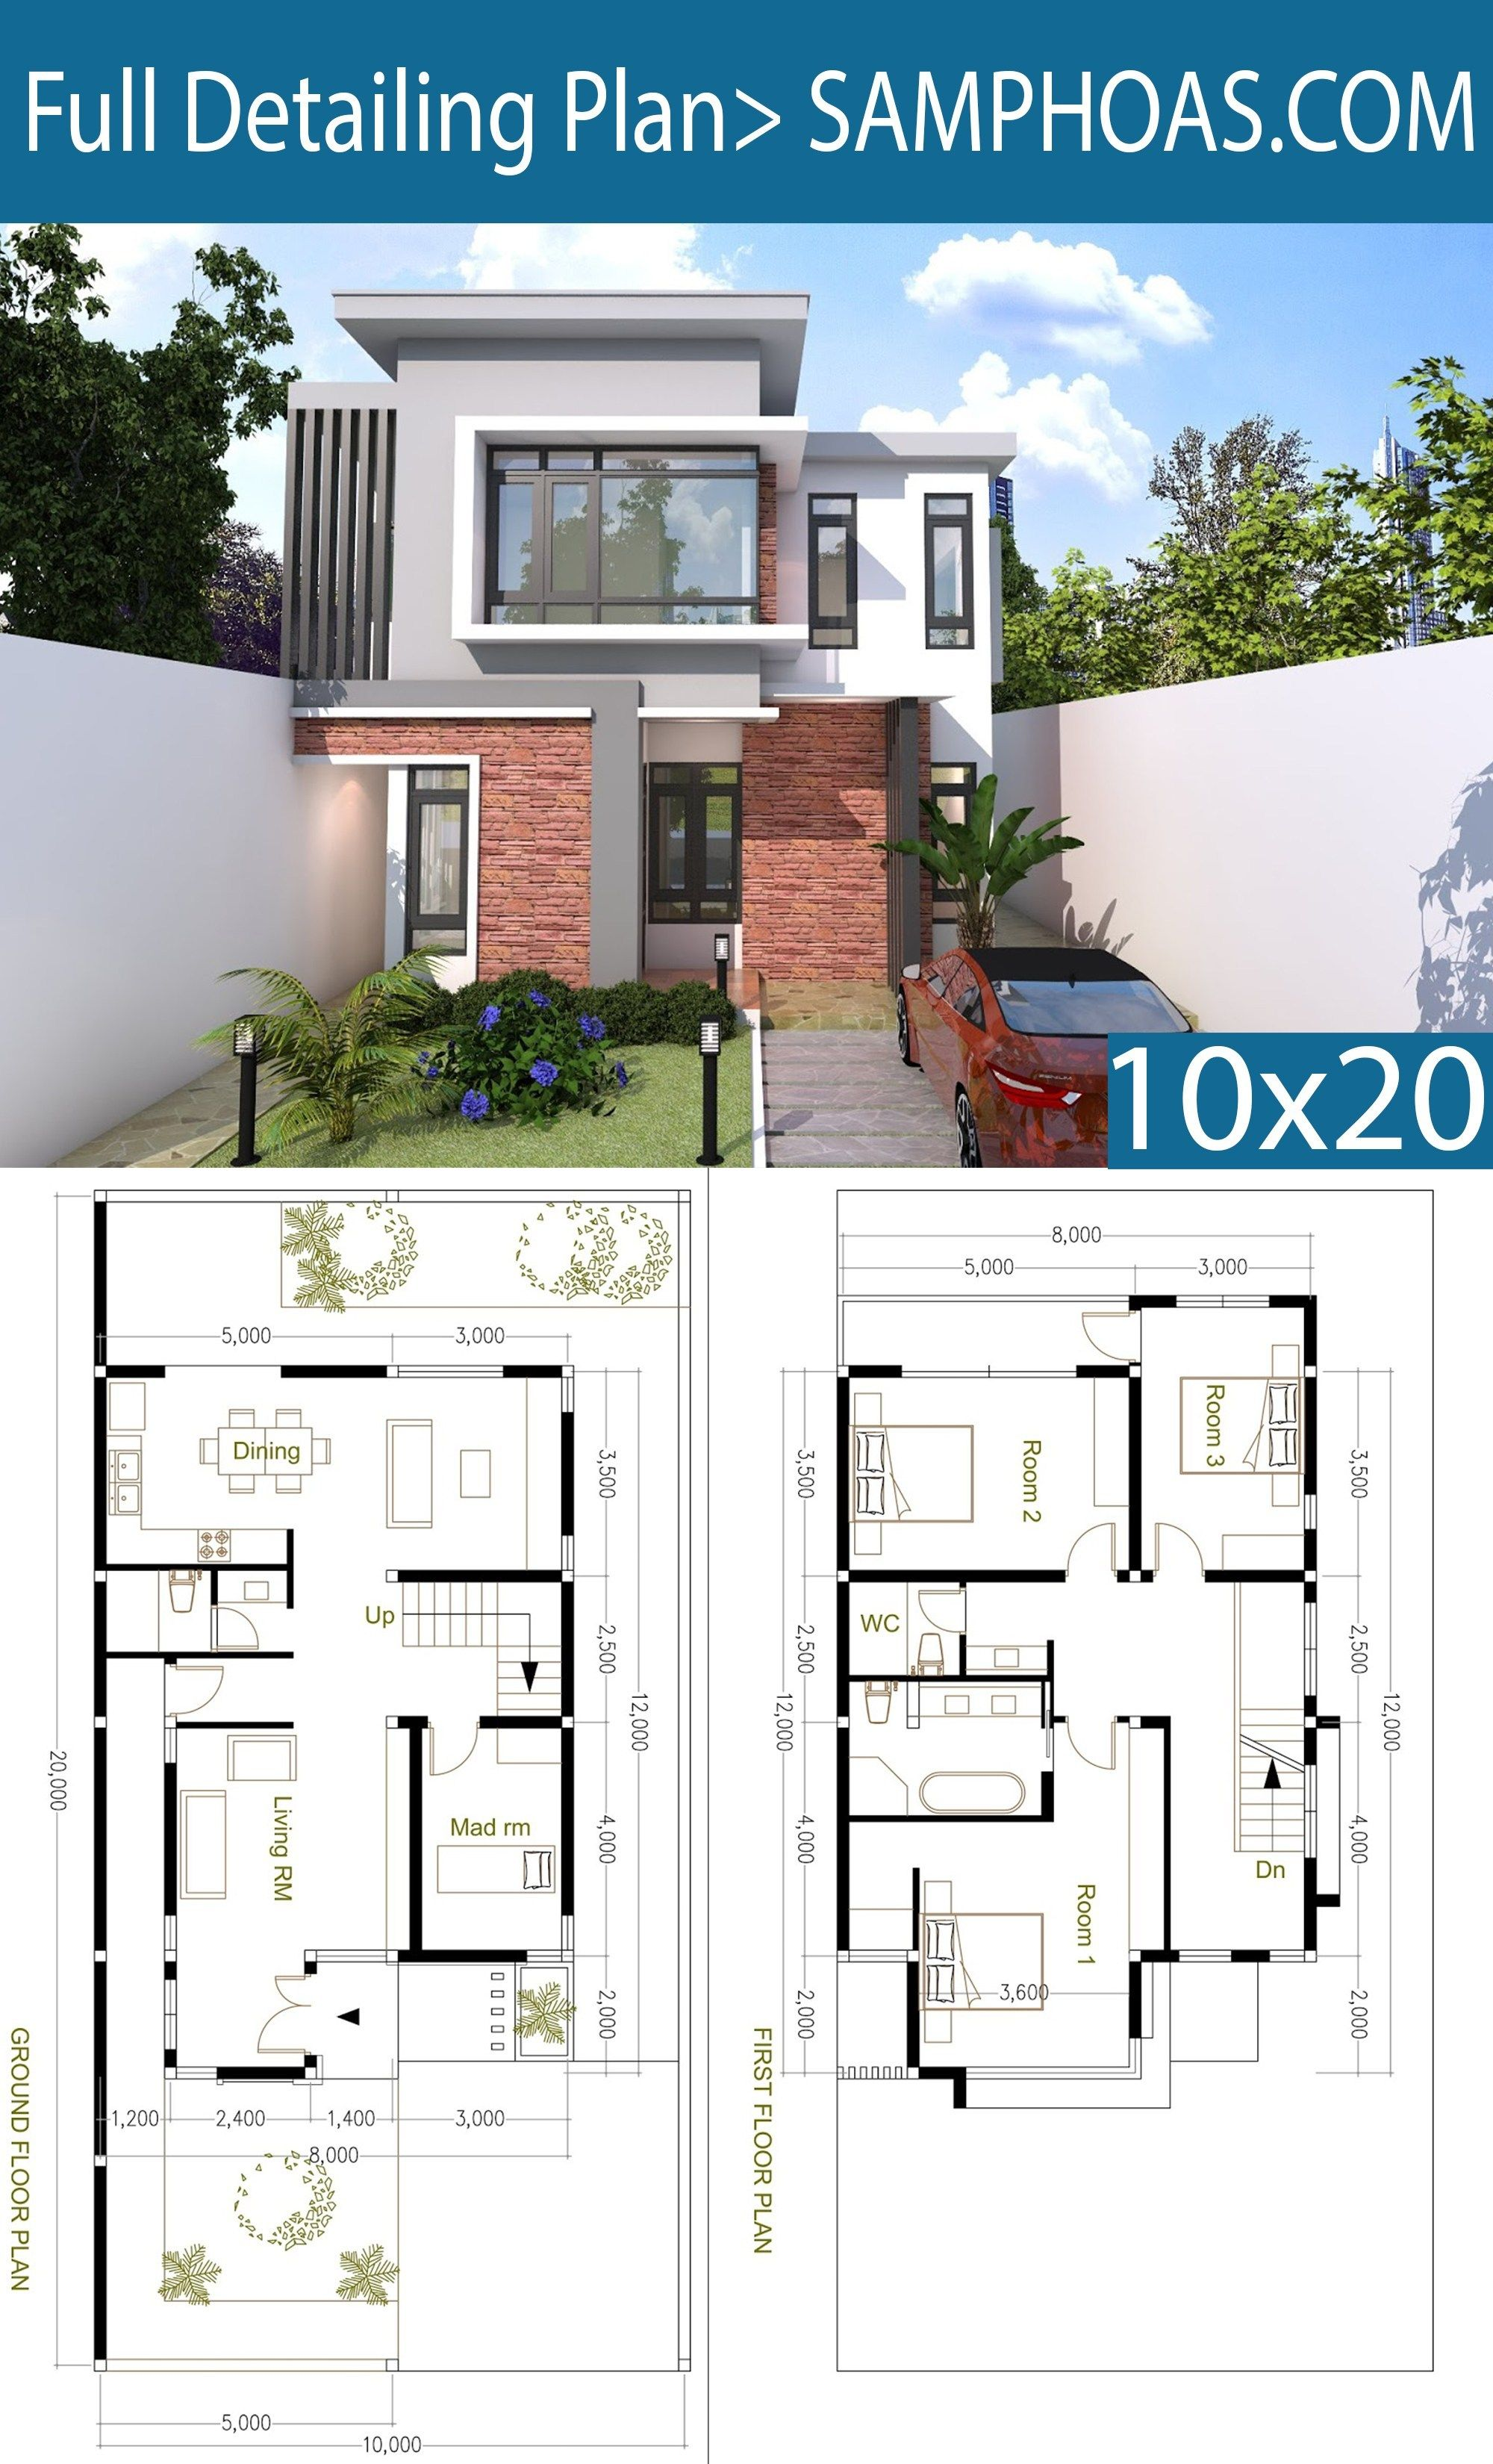 4 Bedroom Modern Home Plan Size 8x12m Samphoas Plan Modern House Floor Plans Diy House Plans Modern Style House Plans